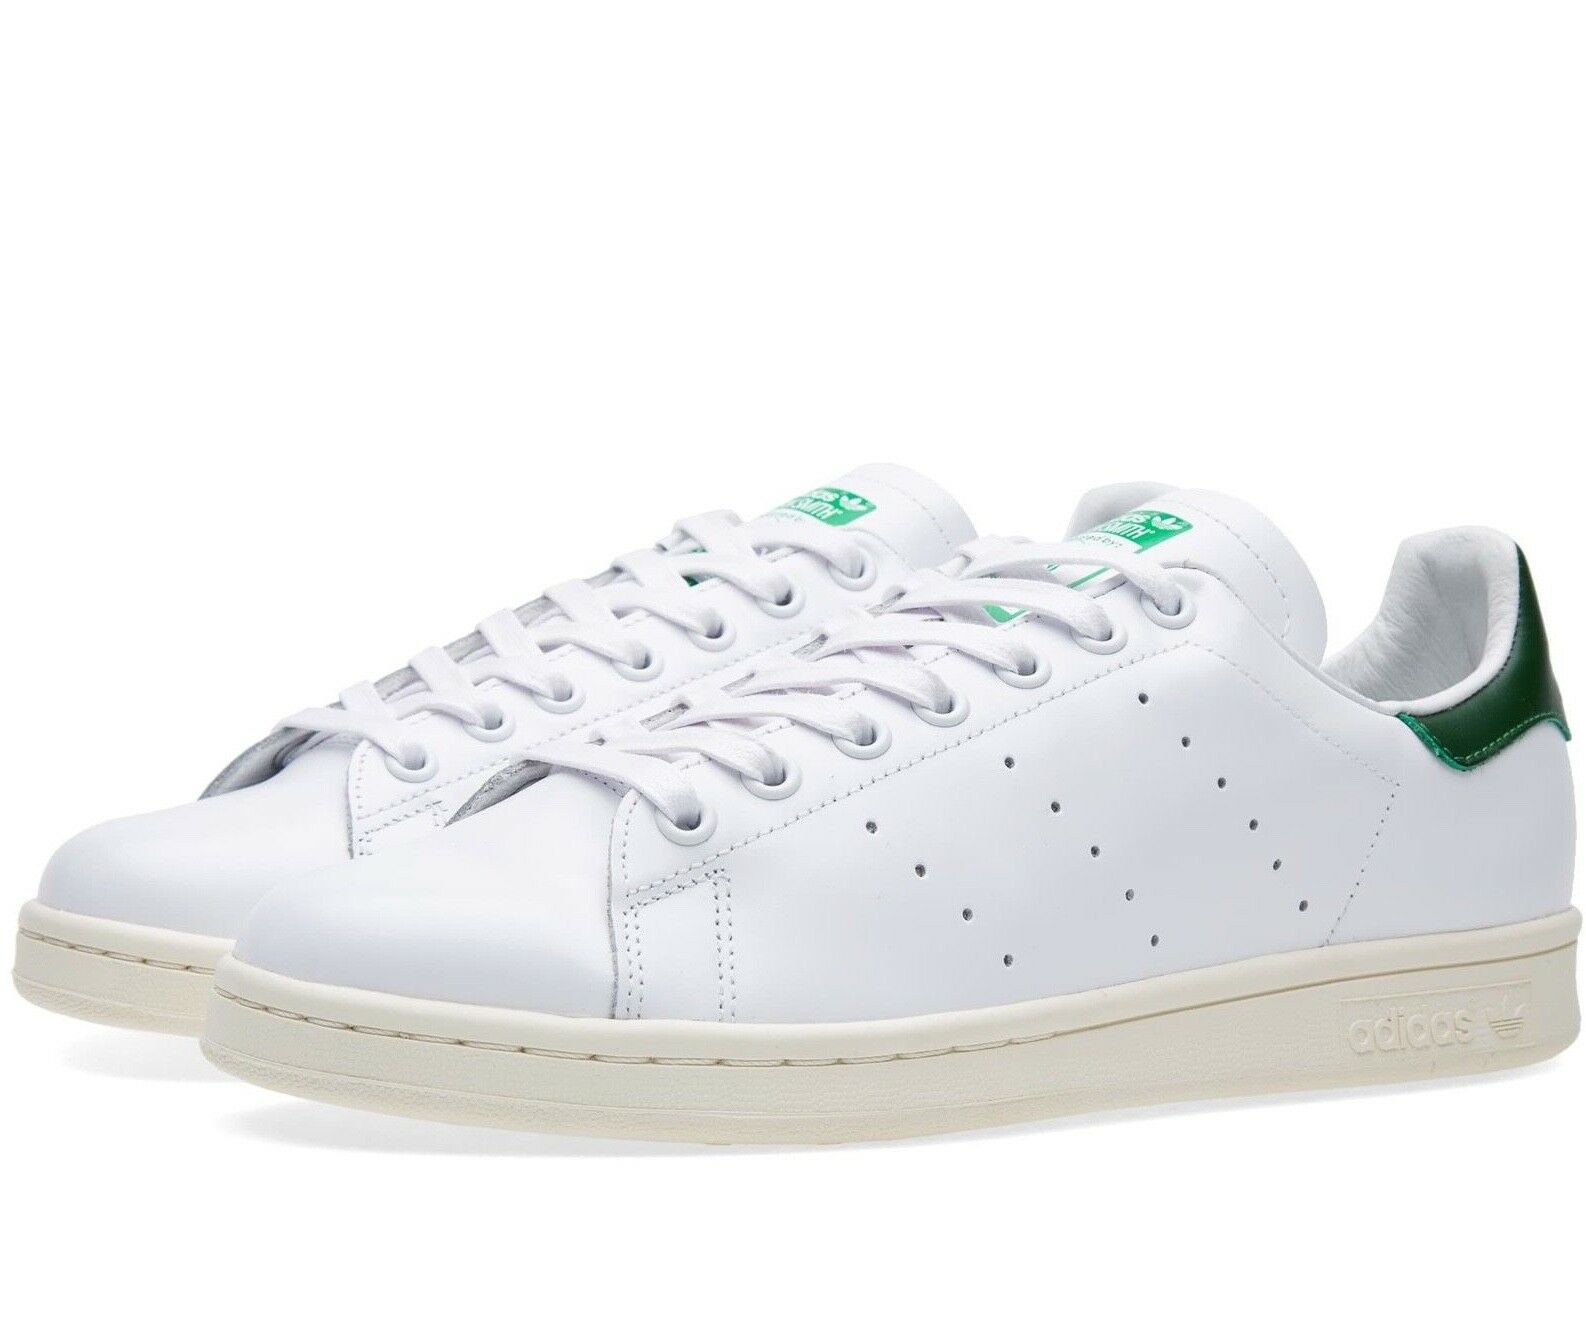 Adidas Originals Stan Smith Homme Trainers Leather Chaussures - B24364 - Blanc Vert